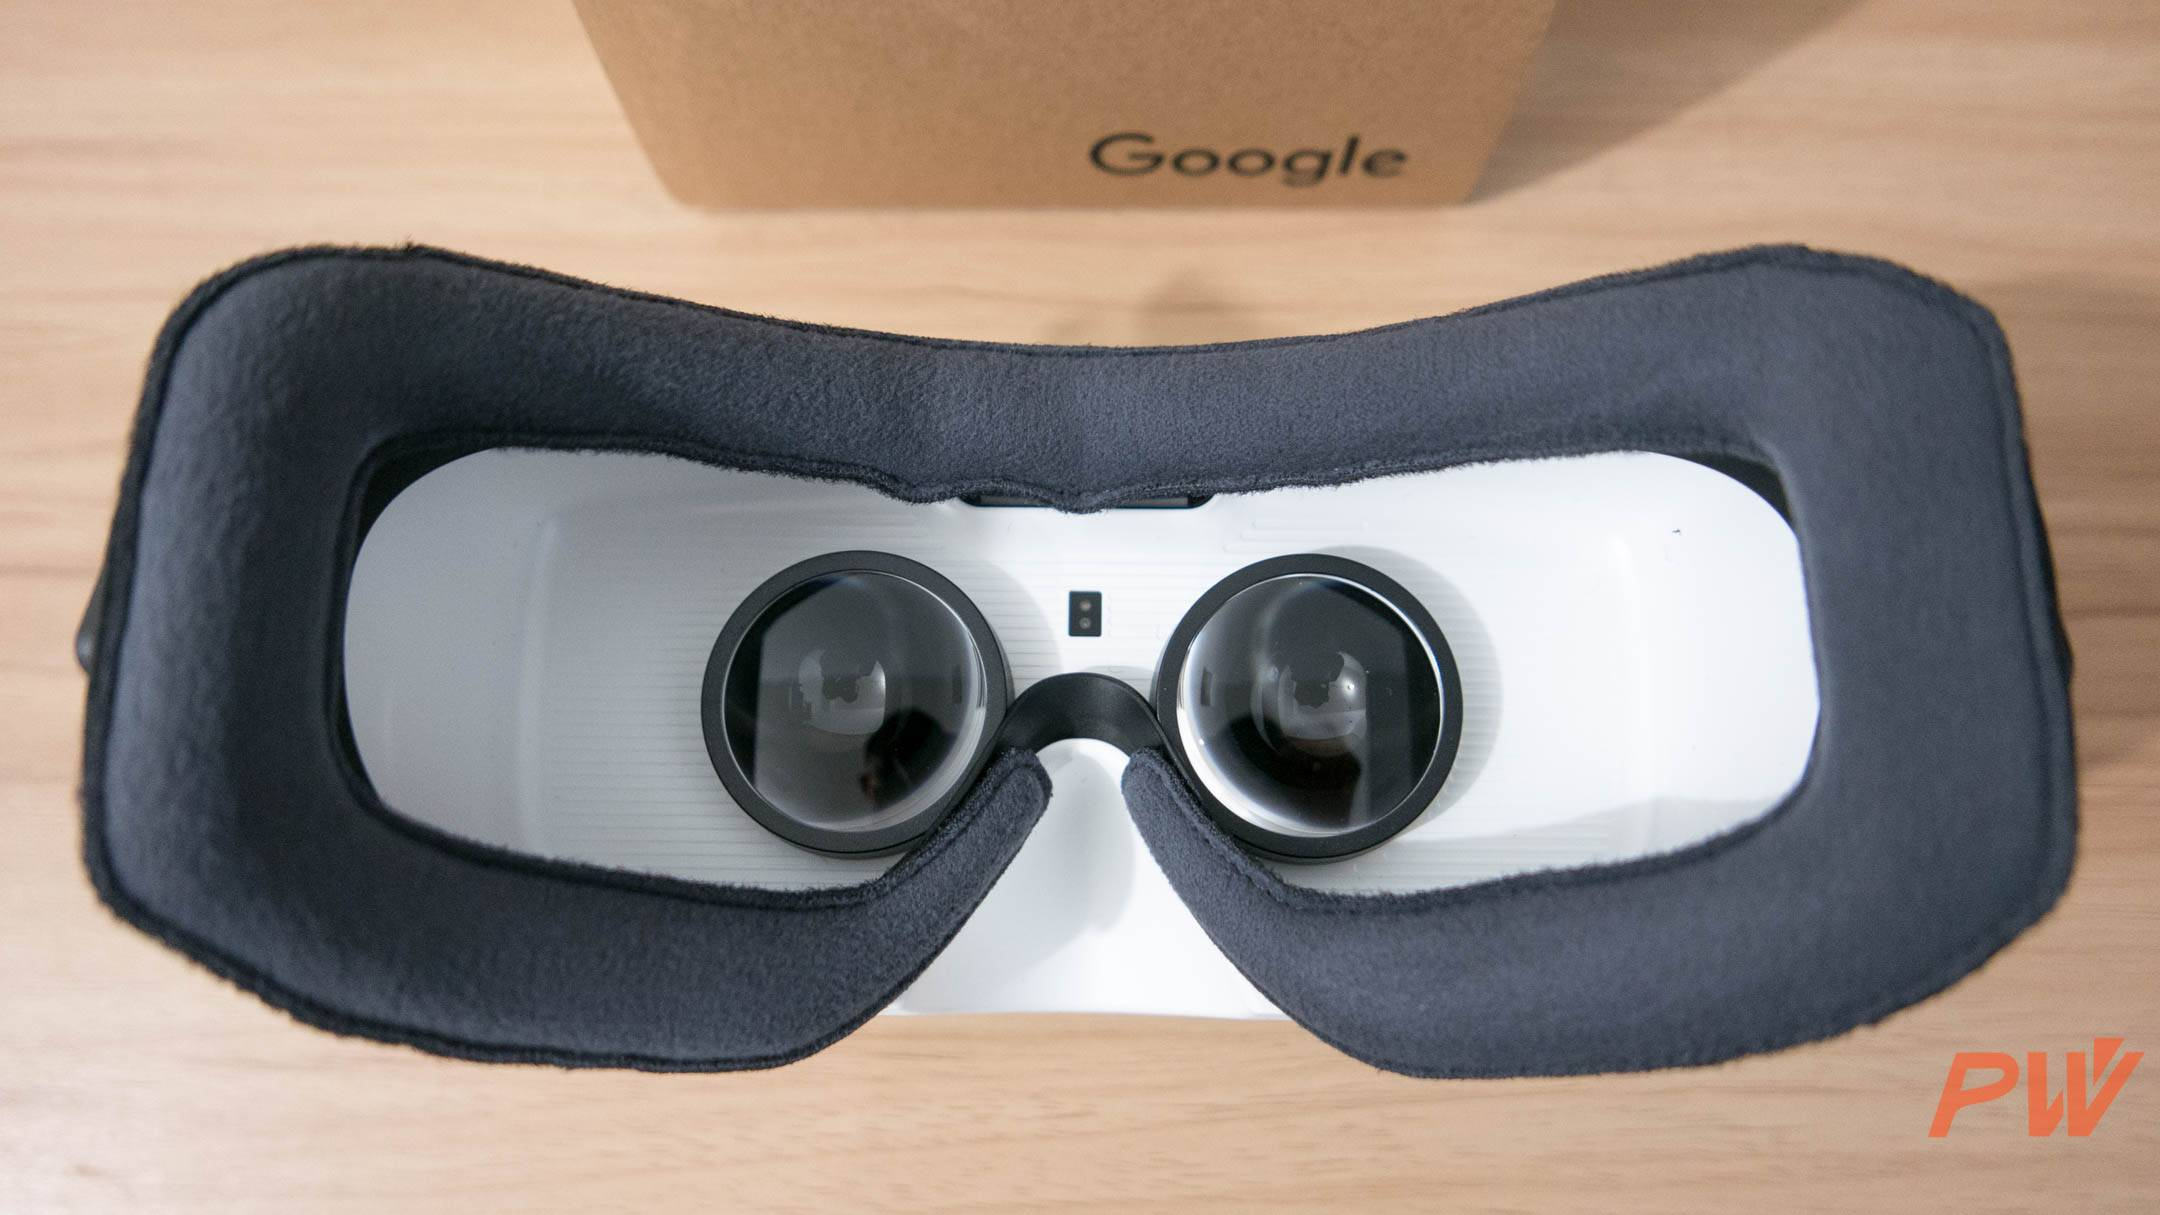 Google Cardboard Samsung Gear VR PingWest Photo By Hao Ying-3